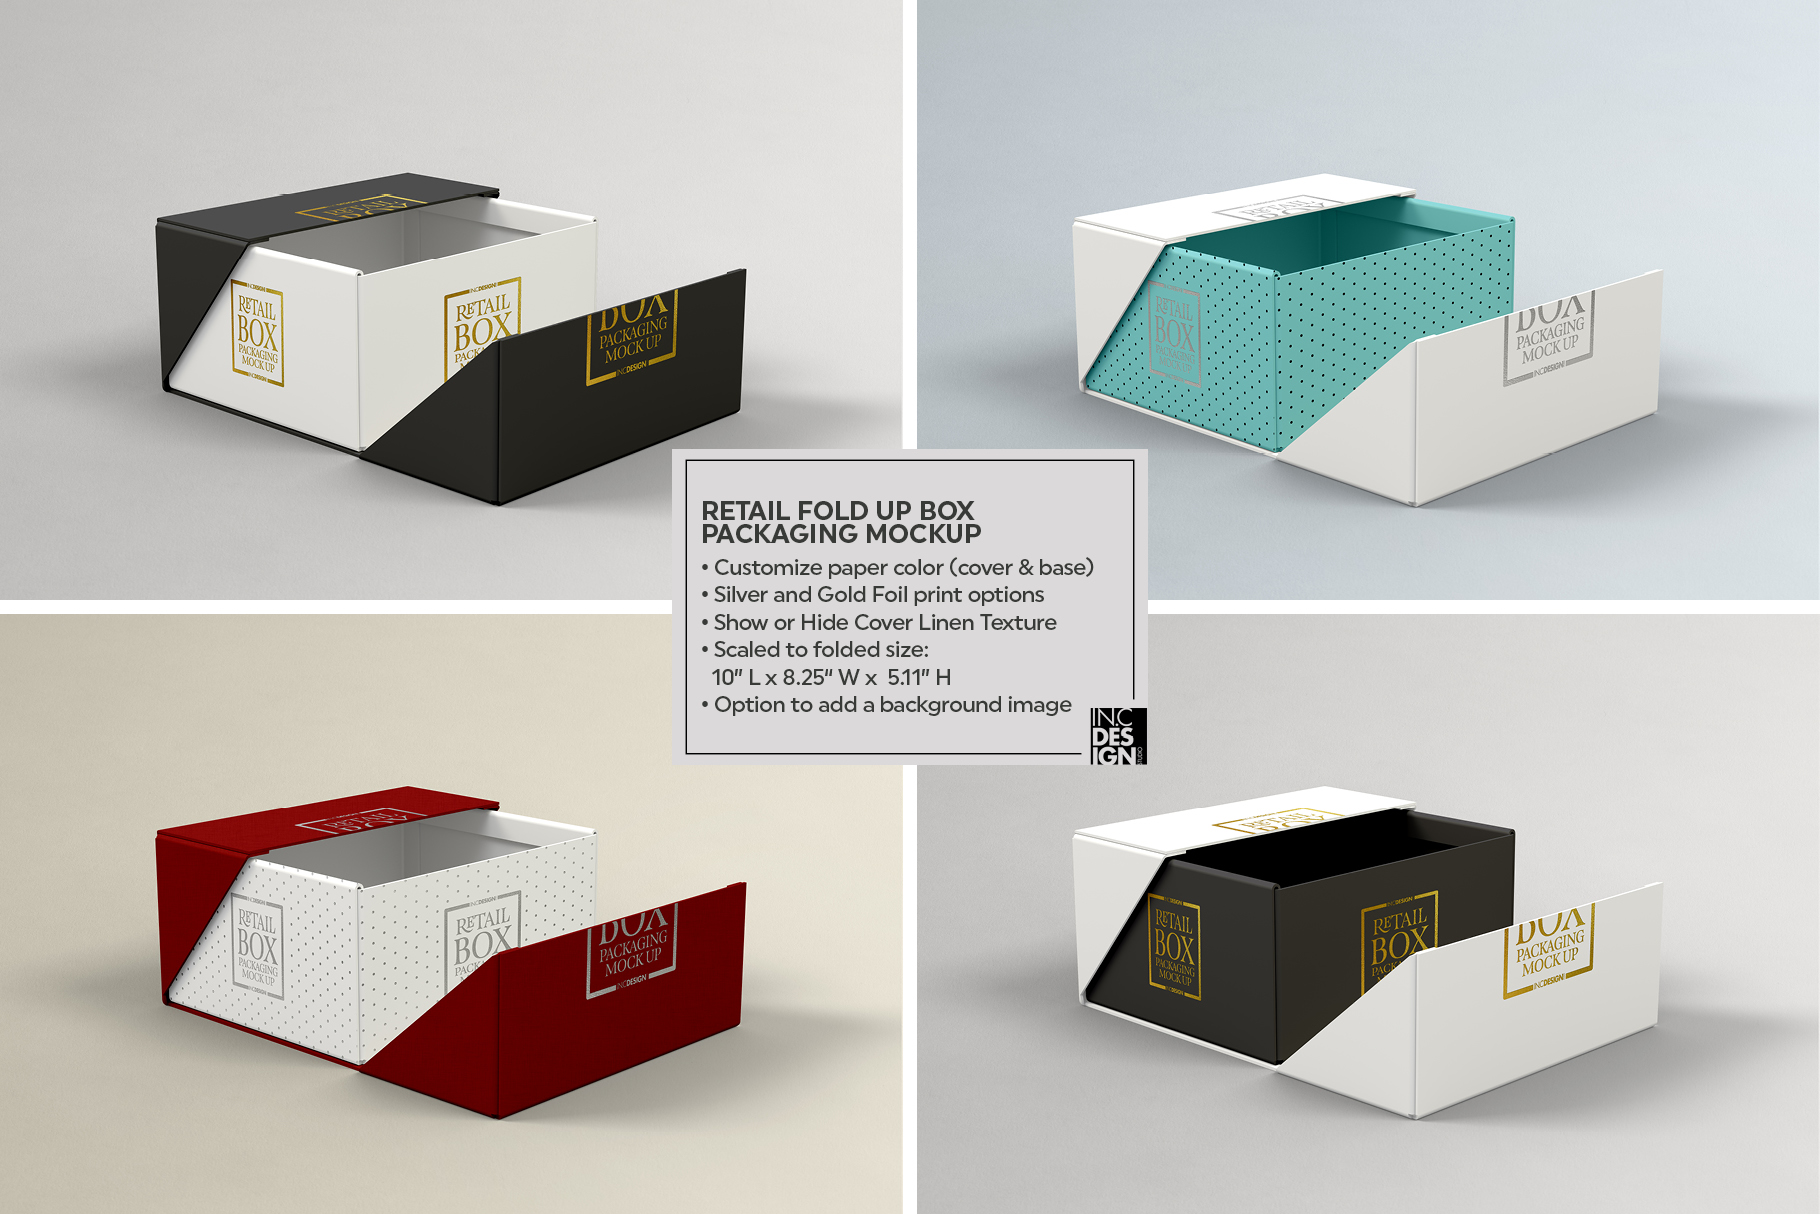 Fold Up Retail Box Packaging Mockup example image 5